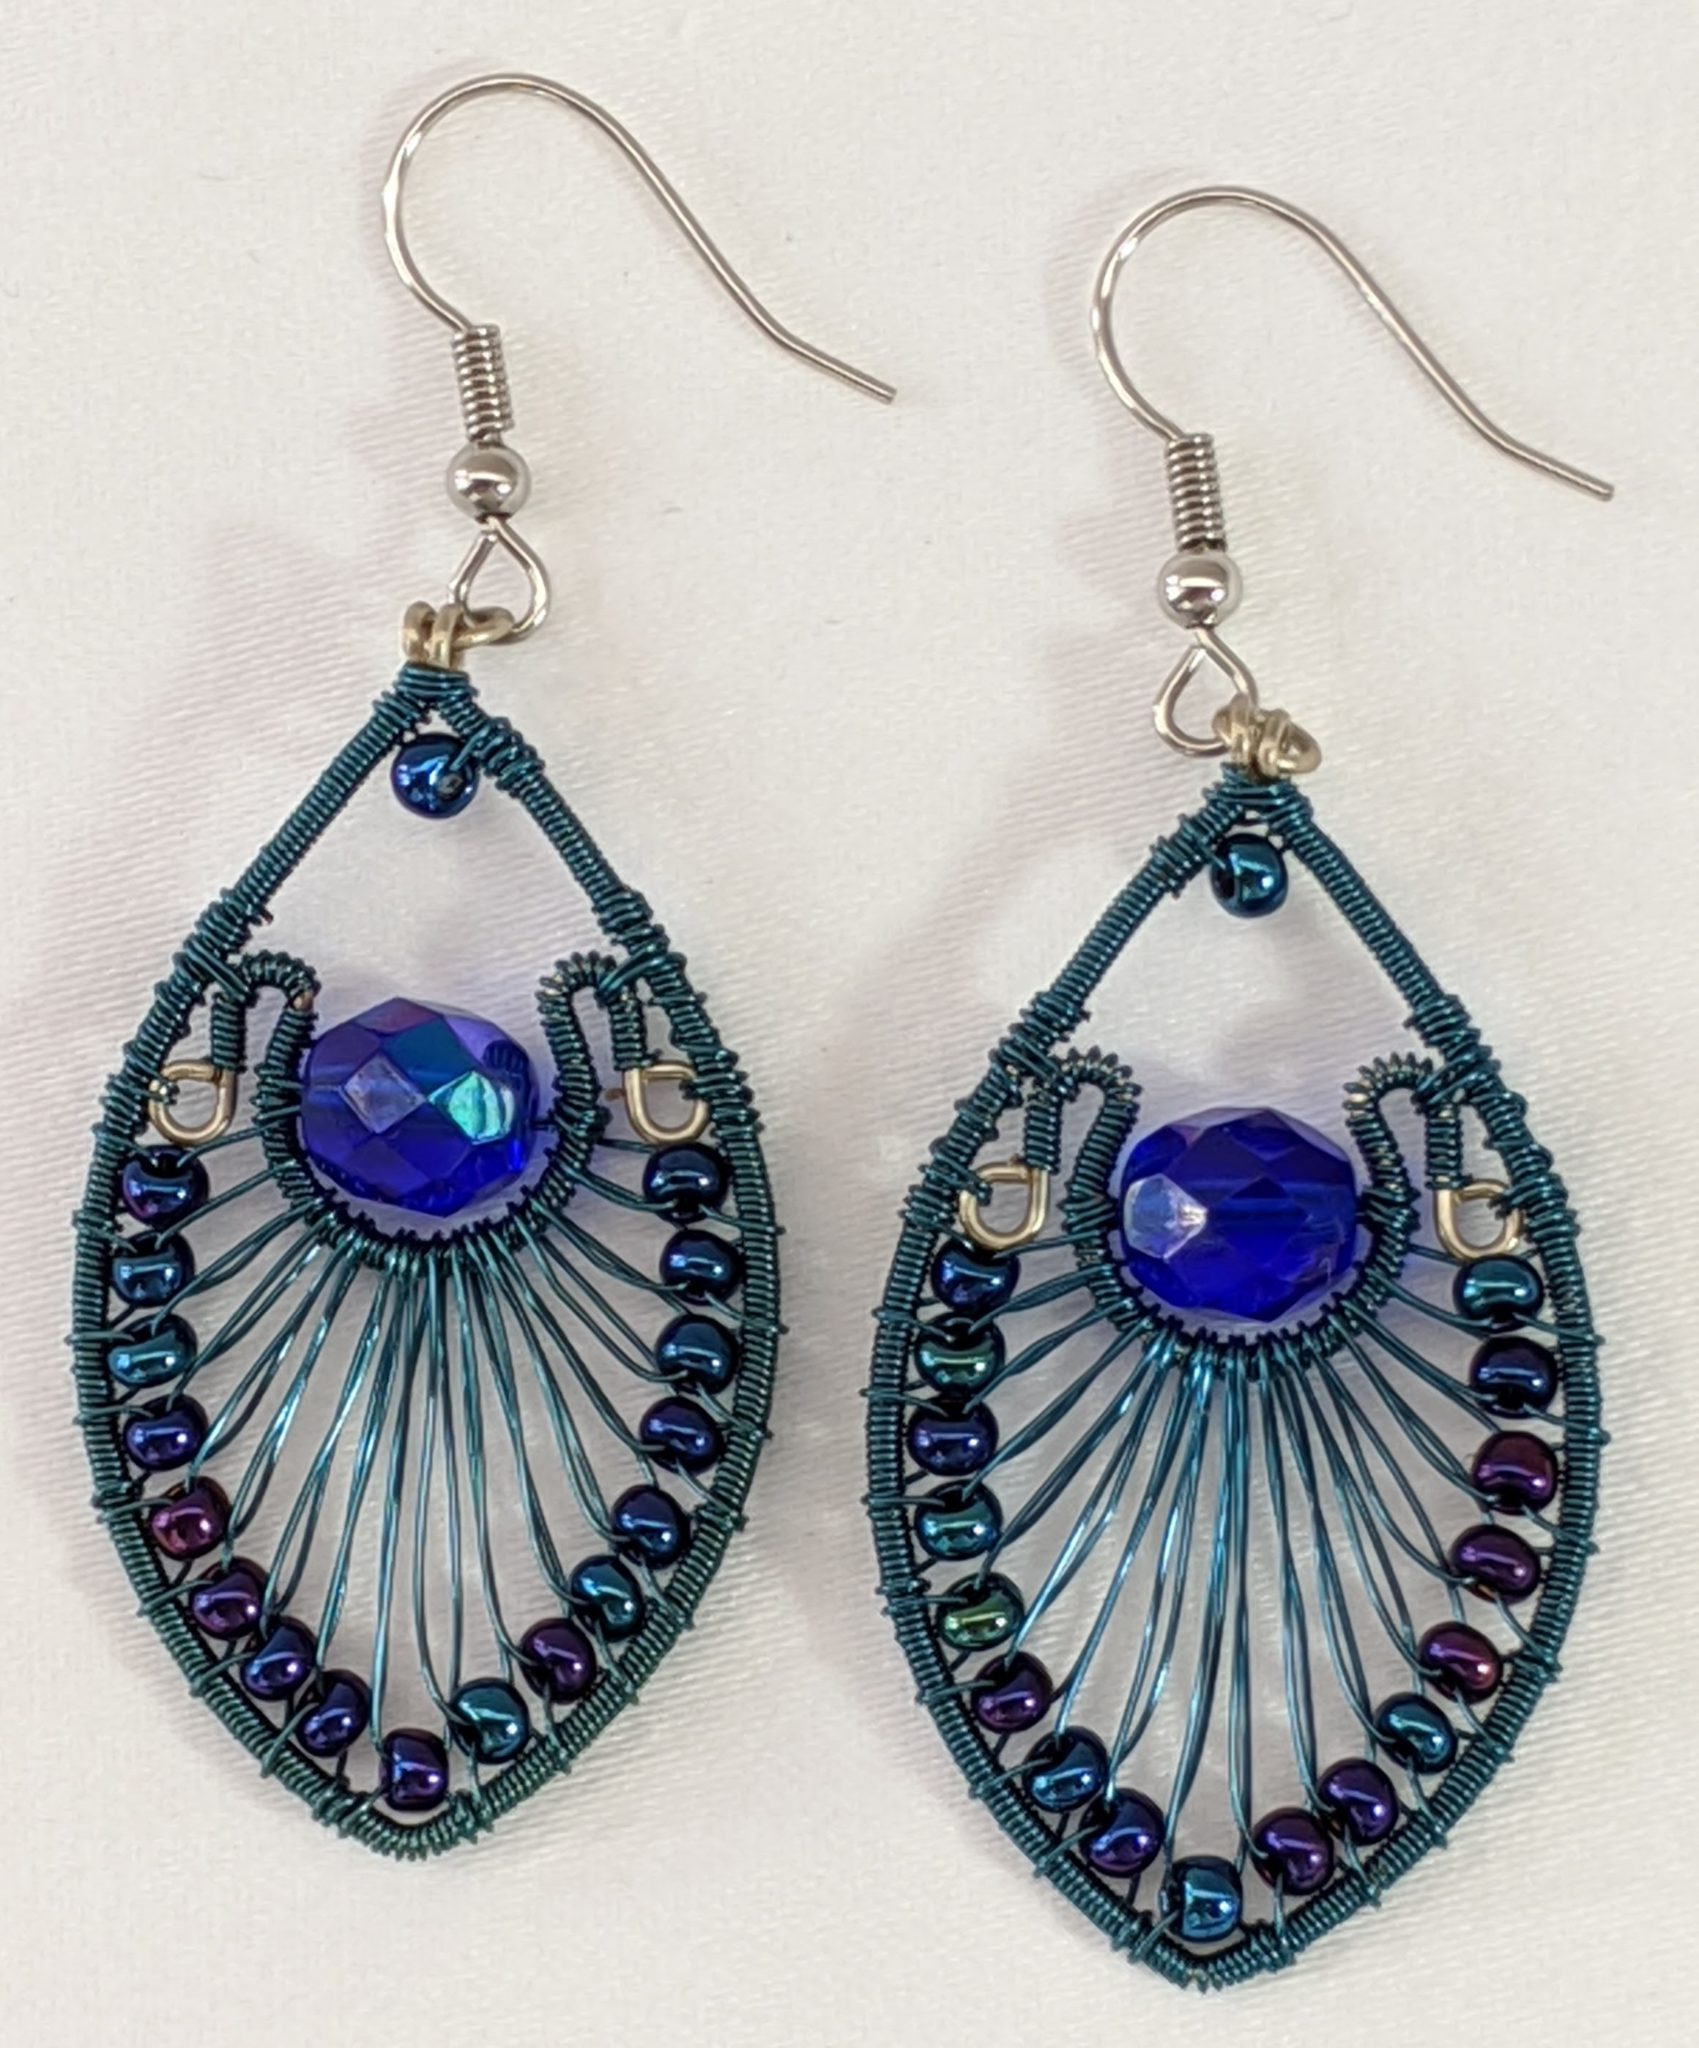 Peacock Earrings - Blue